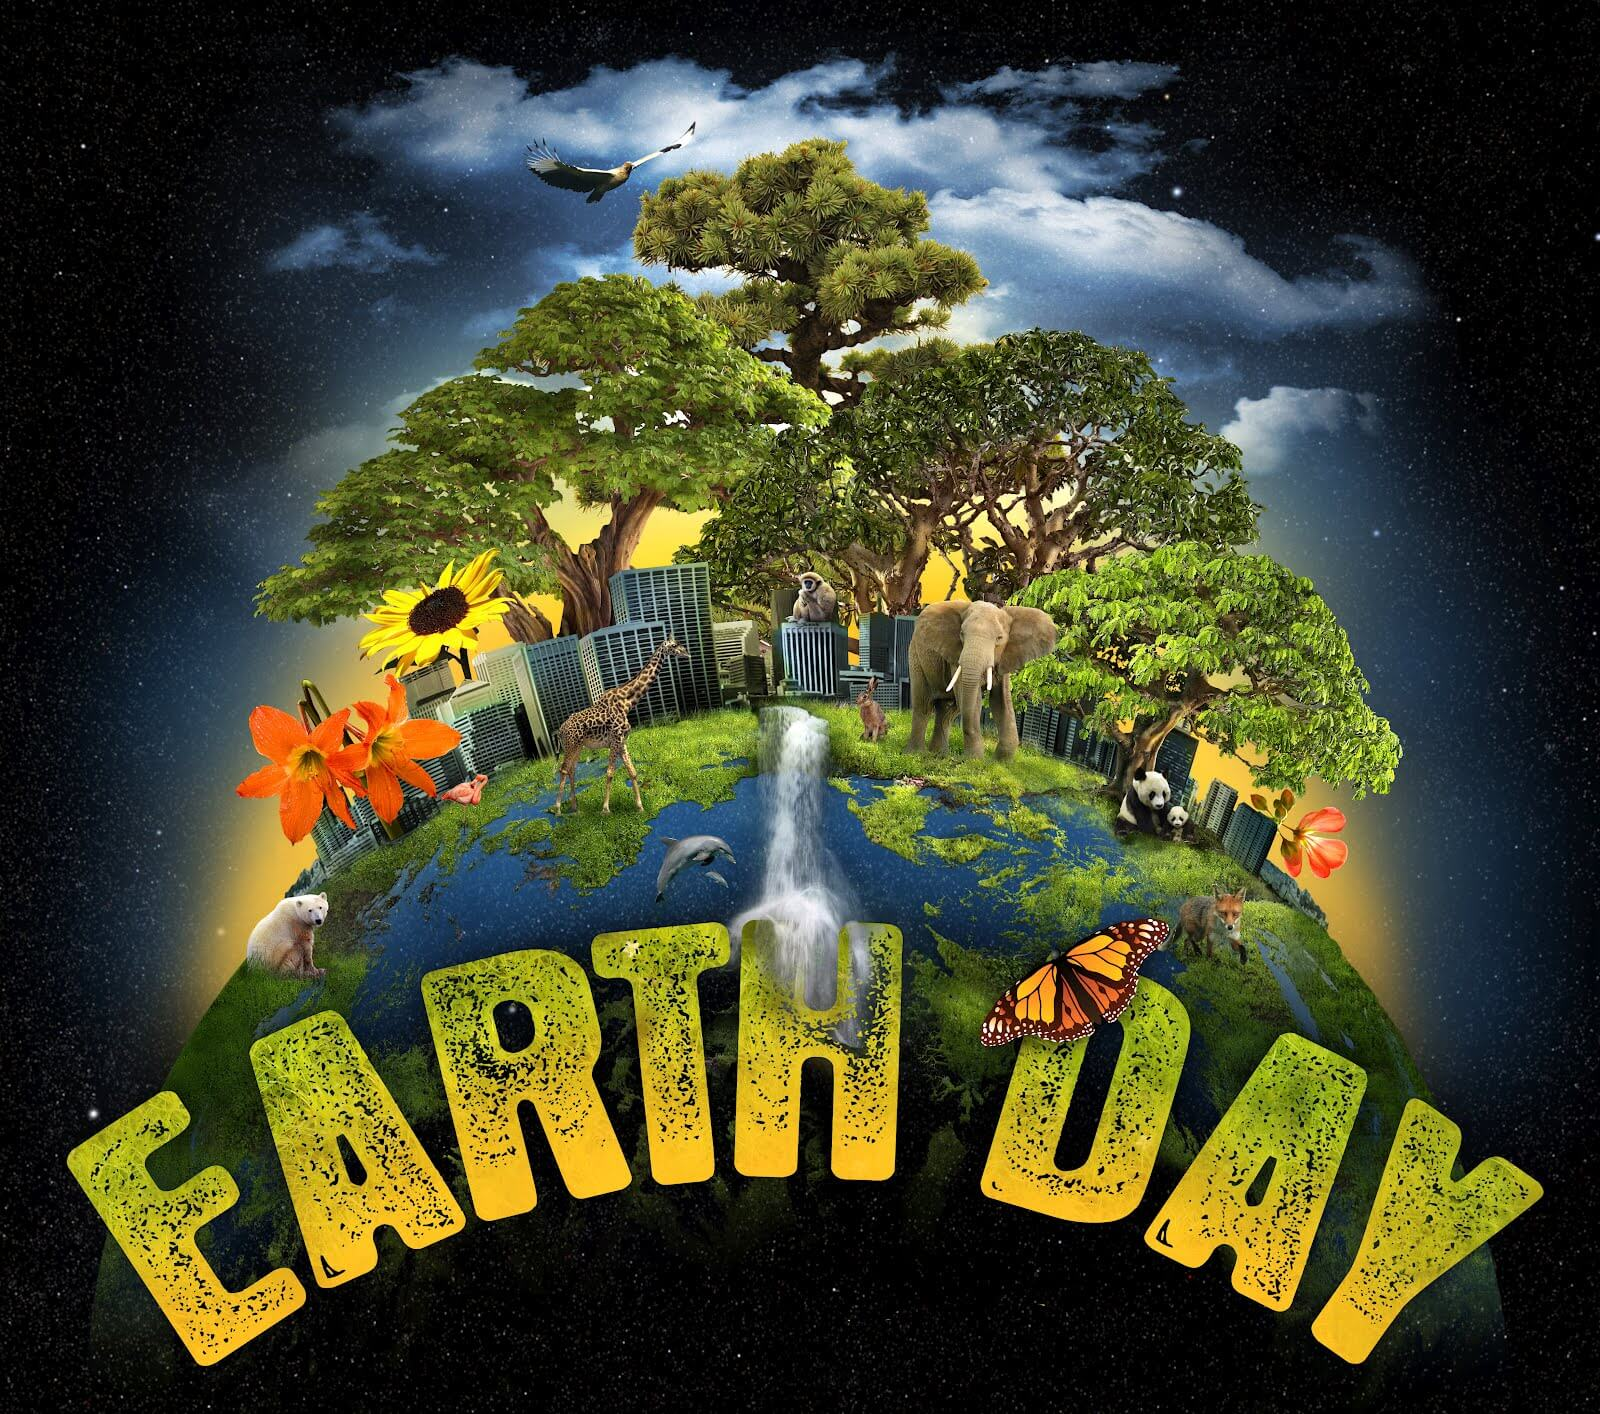 New background images environment free wallpaper - Happy Earth Day Hd Graphic Animated Background Wallpaper